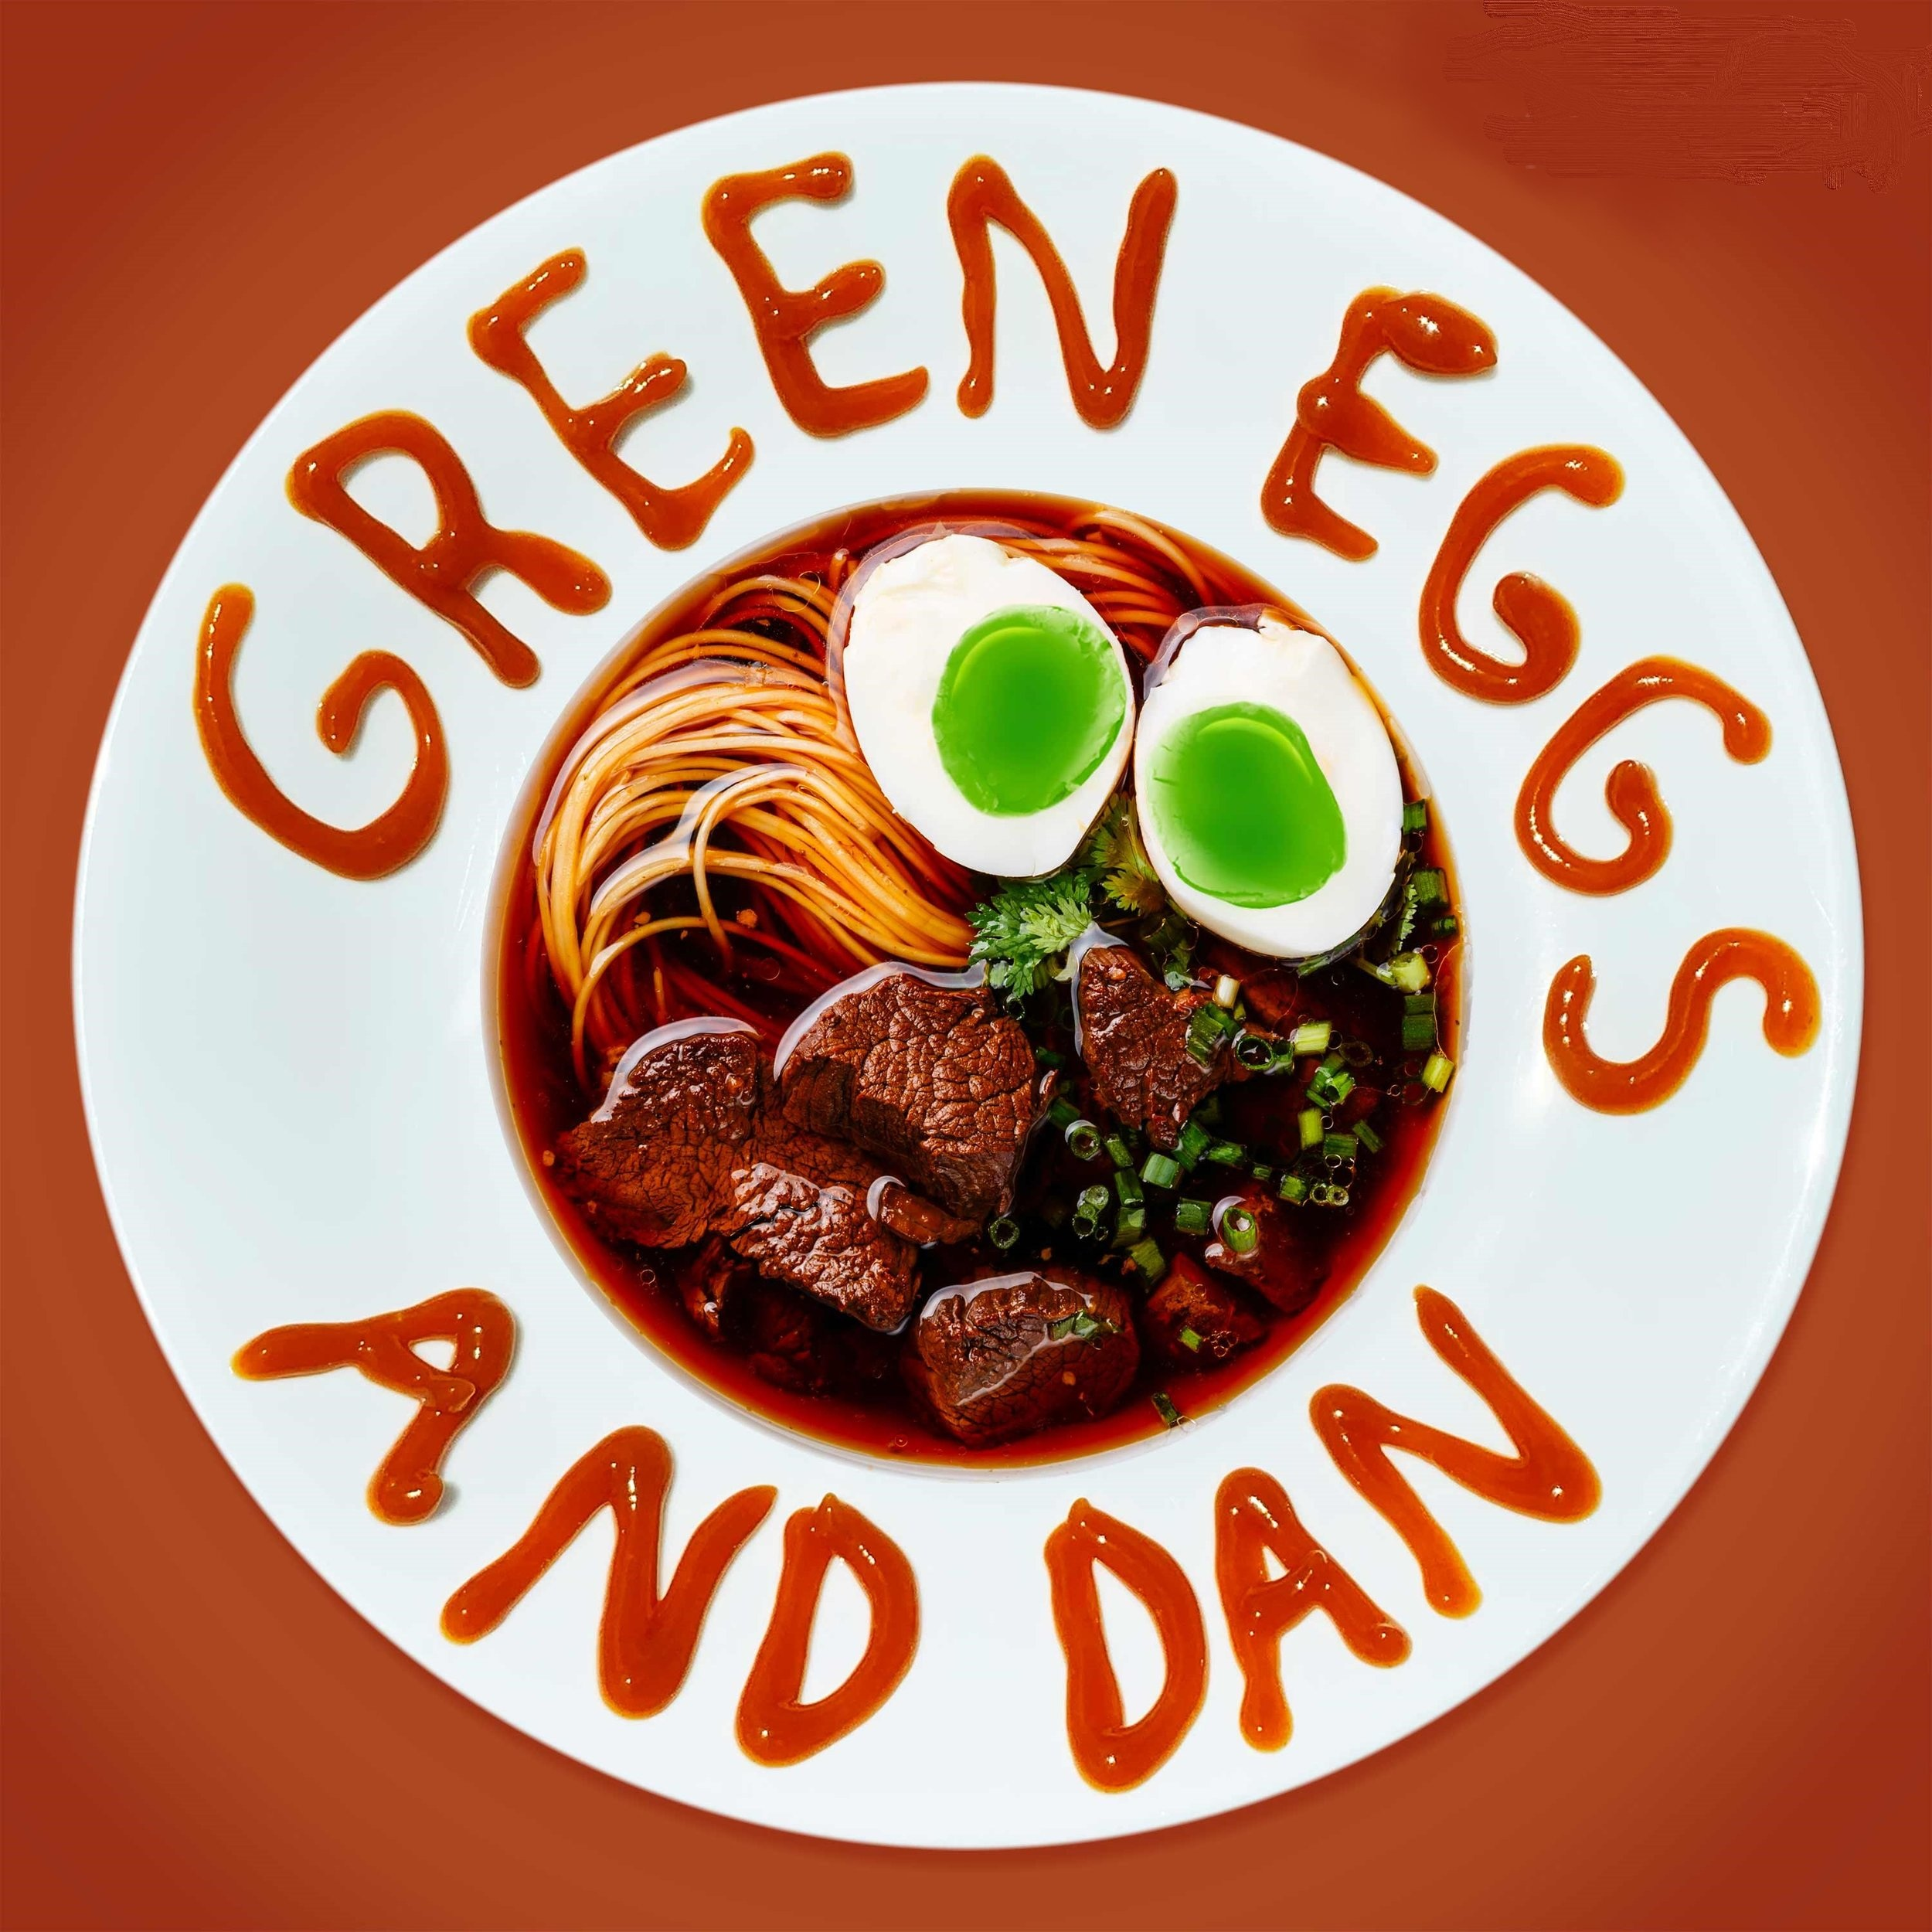 R_Green_Eggs_Dan_Main_Cover_Art_logo_002.jpg